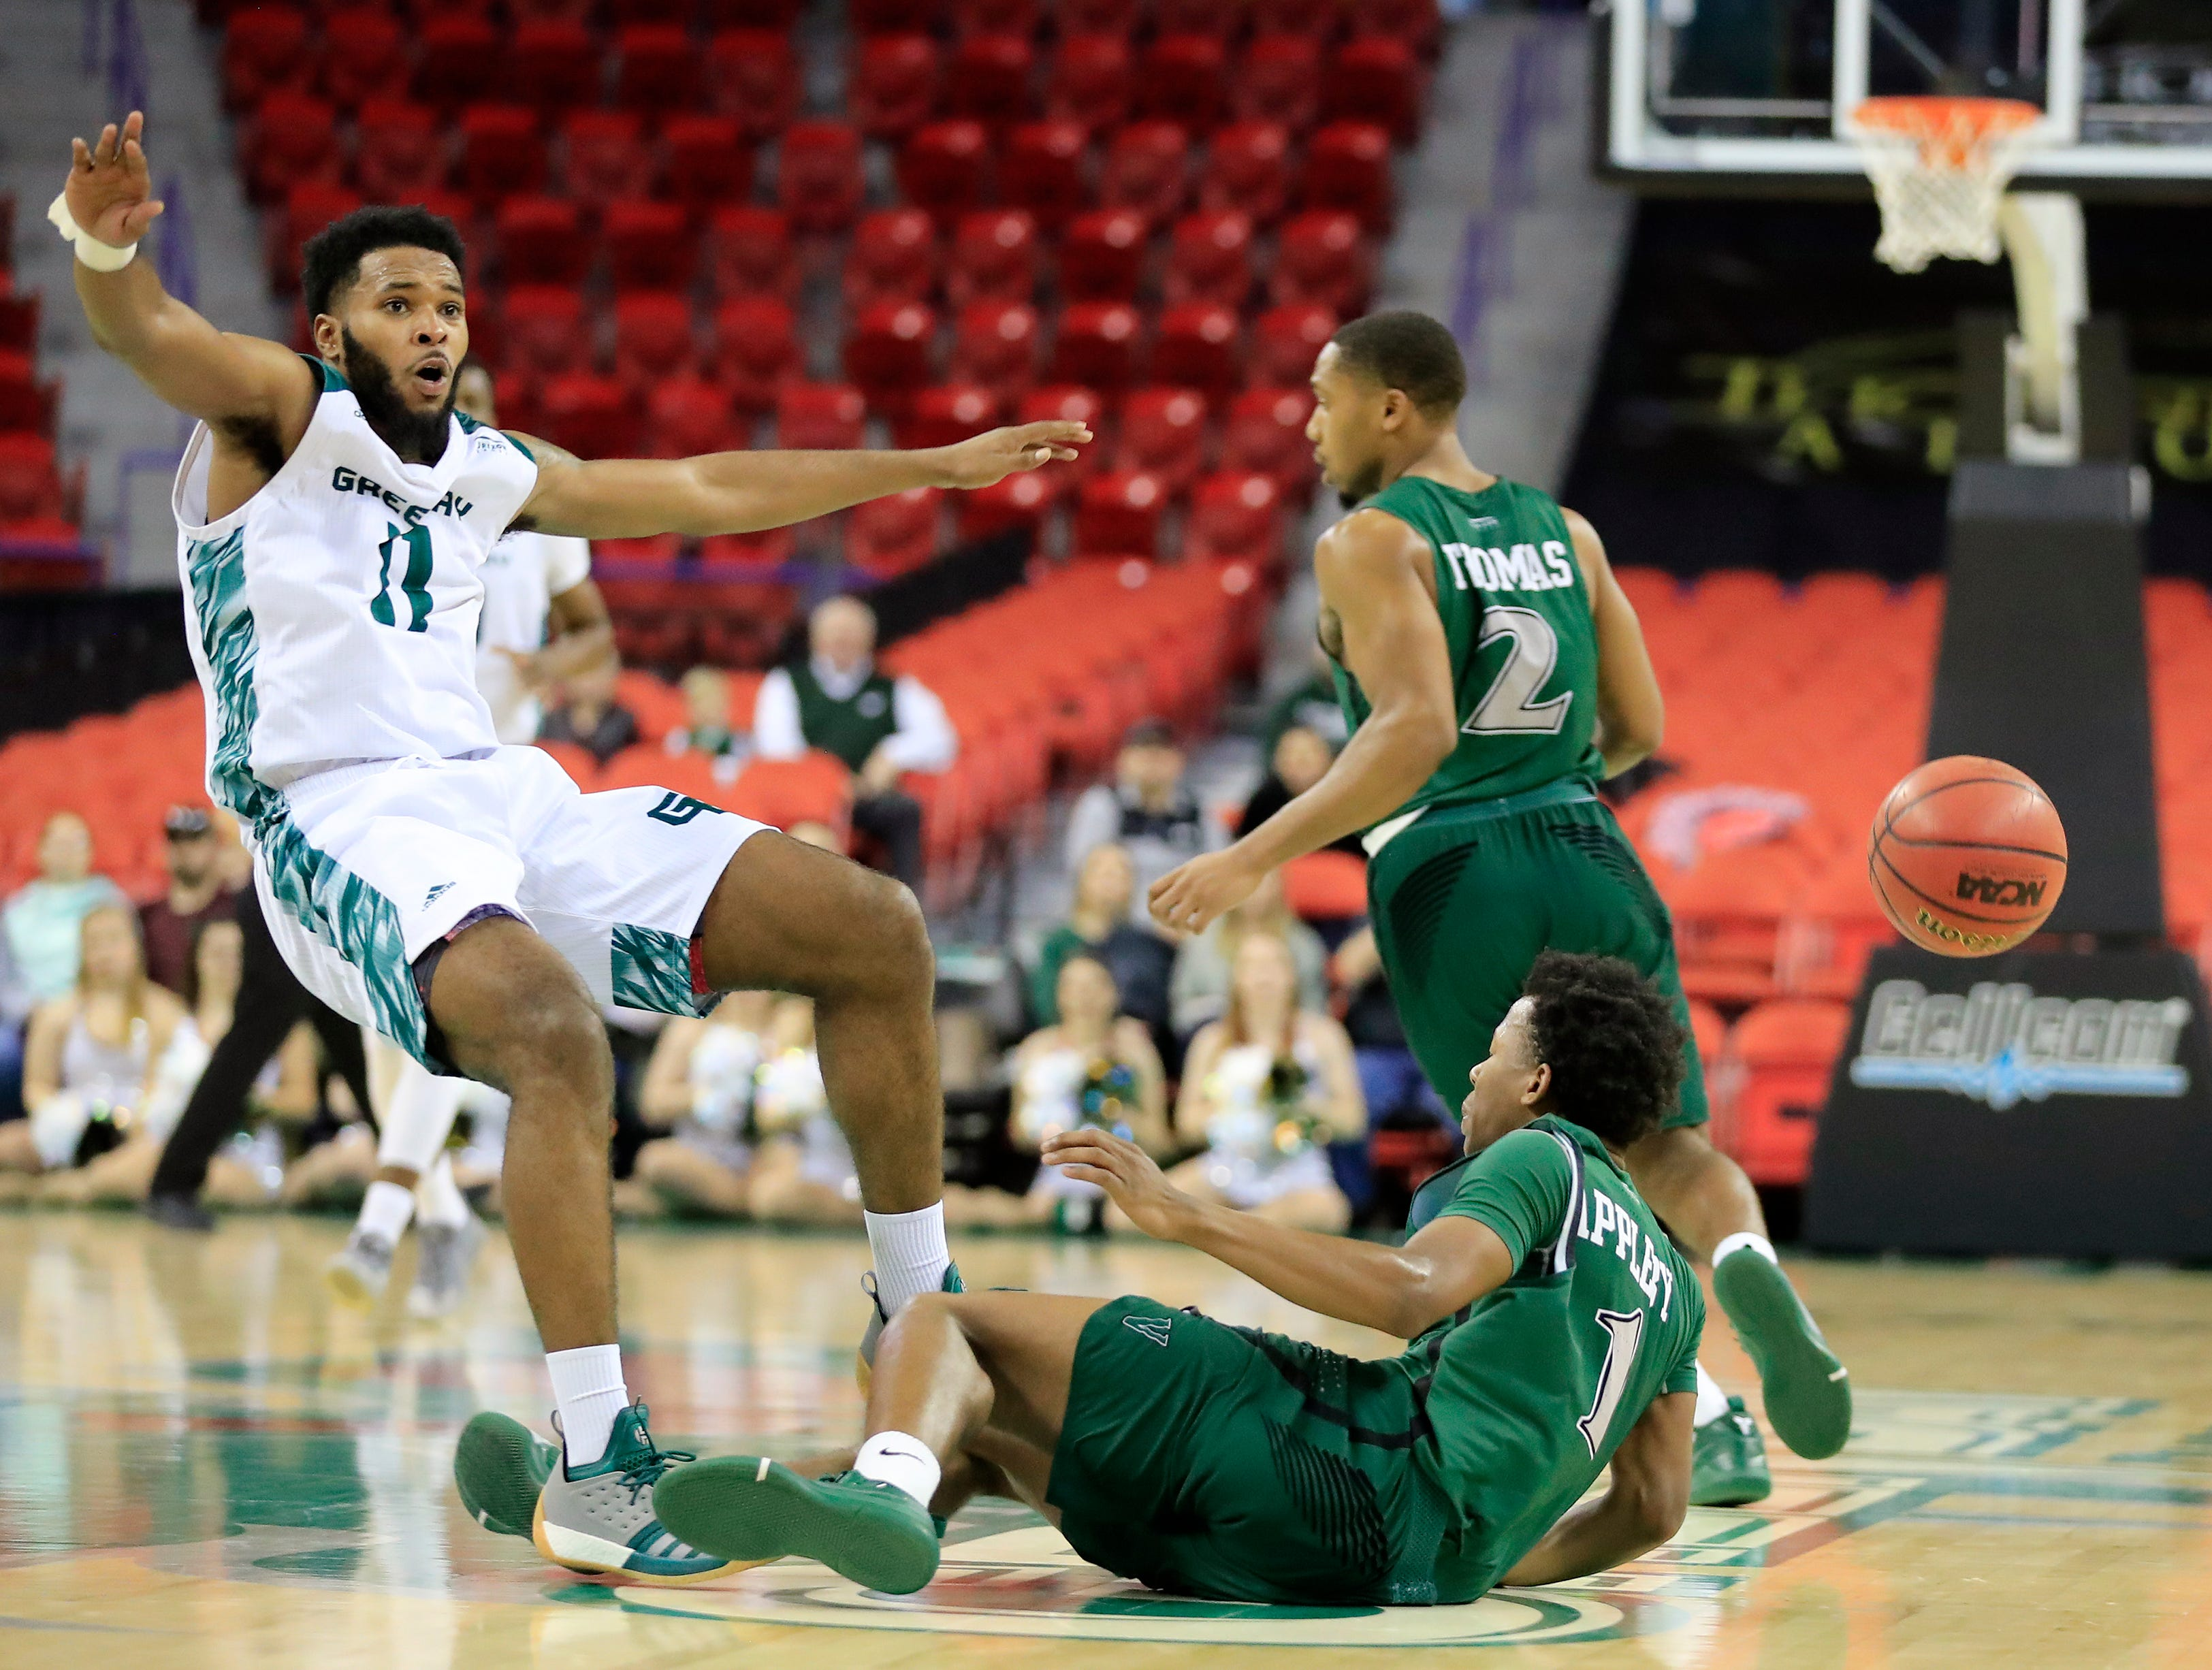 Green Bay Phoenix guard JayQuan McCloud (11) collides with Cleveland State Vikings guard Tyree Appleby (1) in a Horizon League basketball game at the Resch Center on Saturday, January 5, 2019 in Green Bay, Wis.